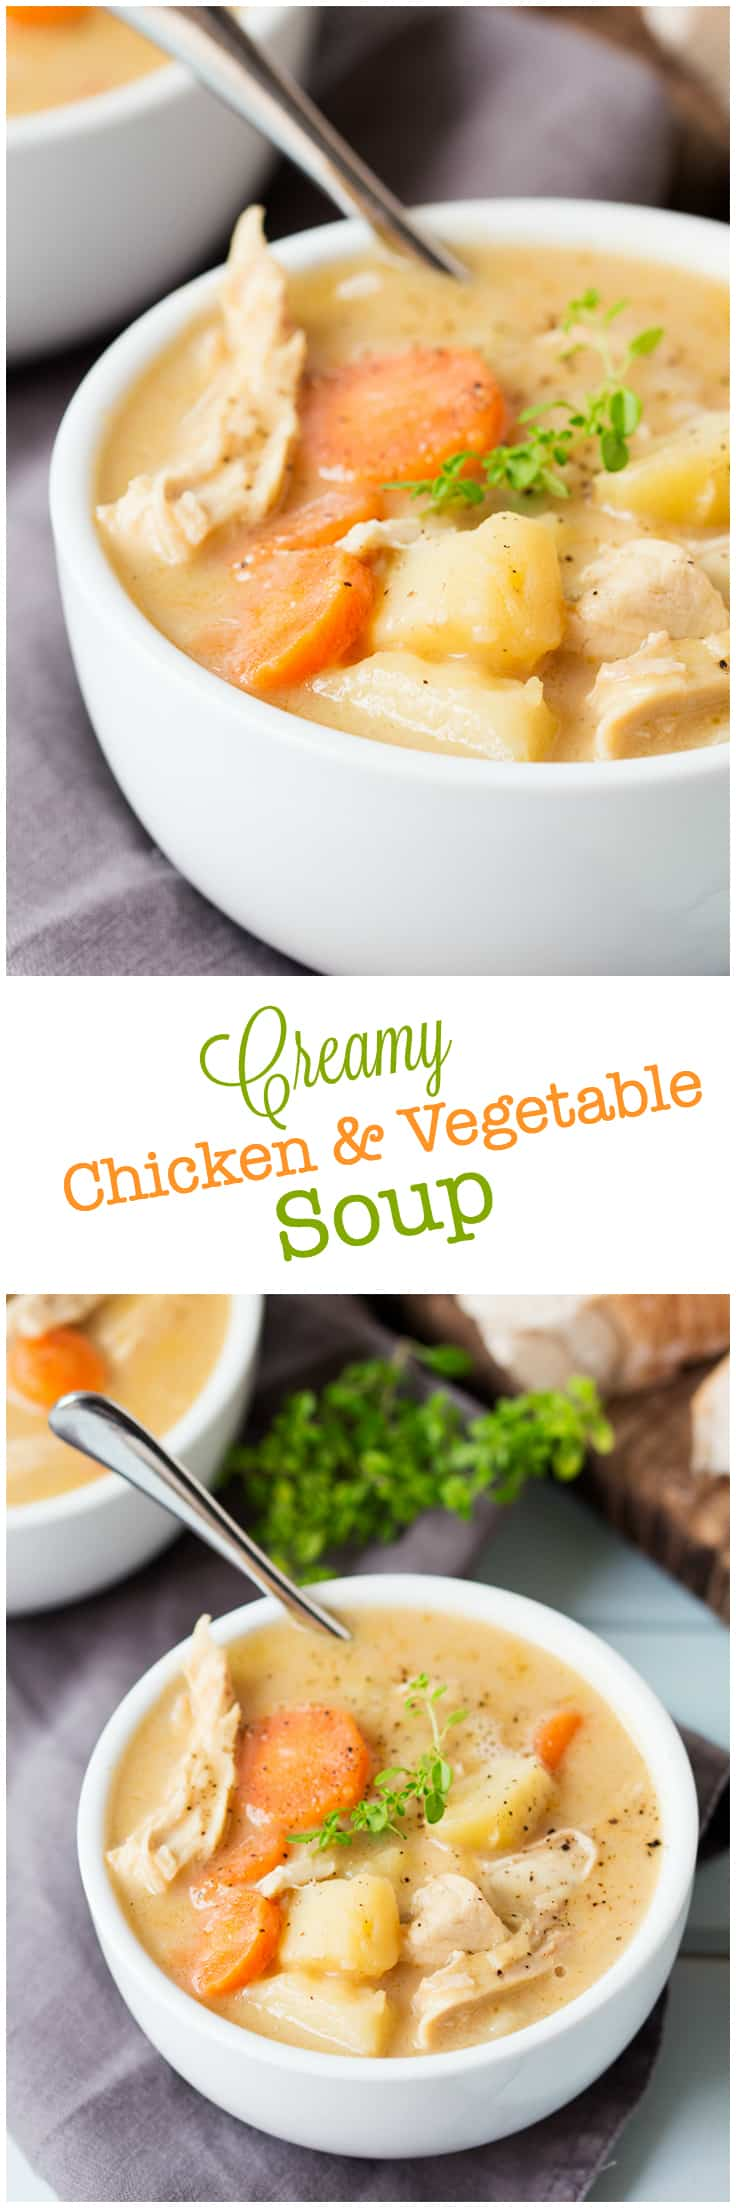 Creamy Chicken and Vegetable Soup - Enjoy a big bowl of this healthy and nourishing soup. Cold days are welcome when you have soup like this one ready to serve!